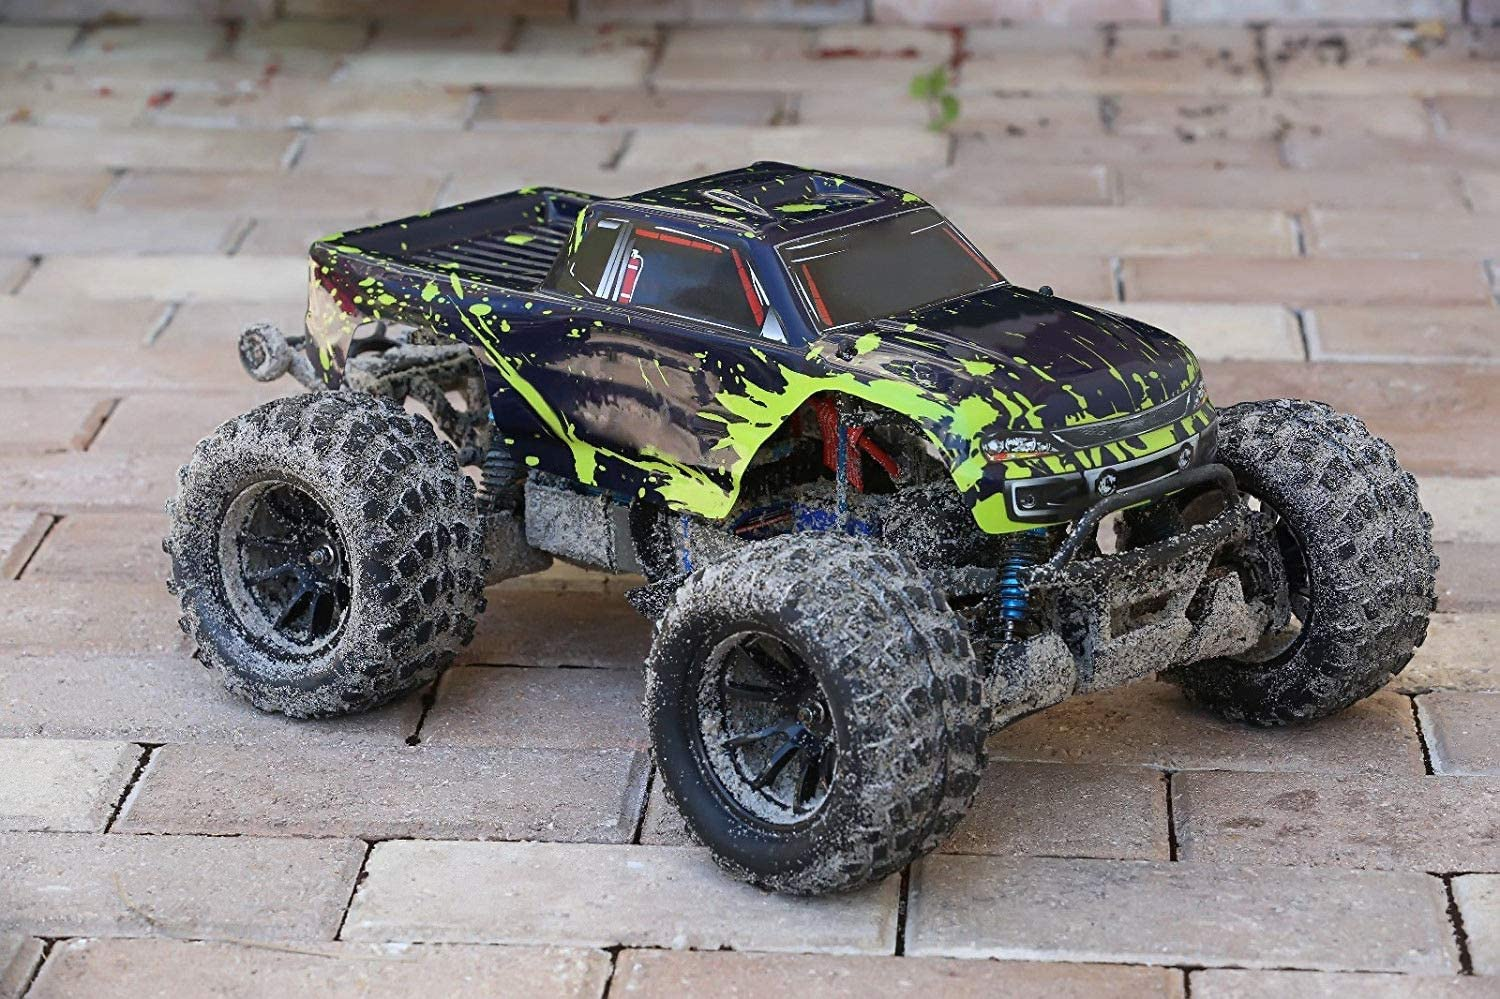 SummitLink Compatible Custom Body Muddy Green Over Black Replacement for Traxxas 1//10 Stampede Bigfoot 4x4 VXL 2WD Slayer RC Car or Truck ST-BG-02 Truck not Included